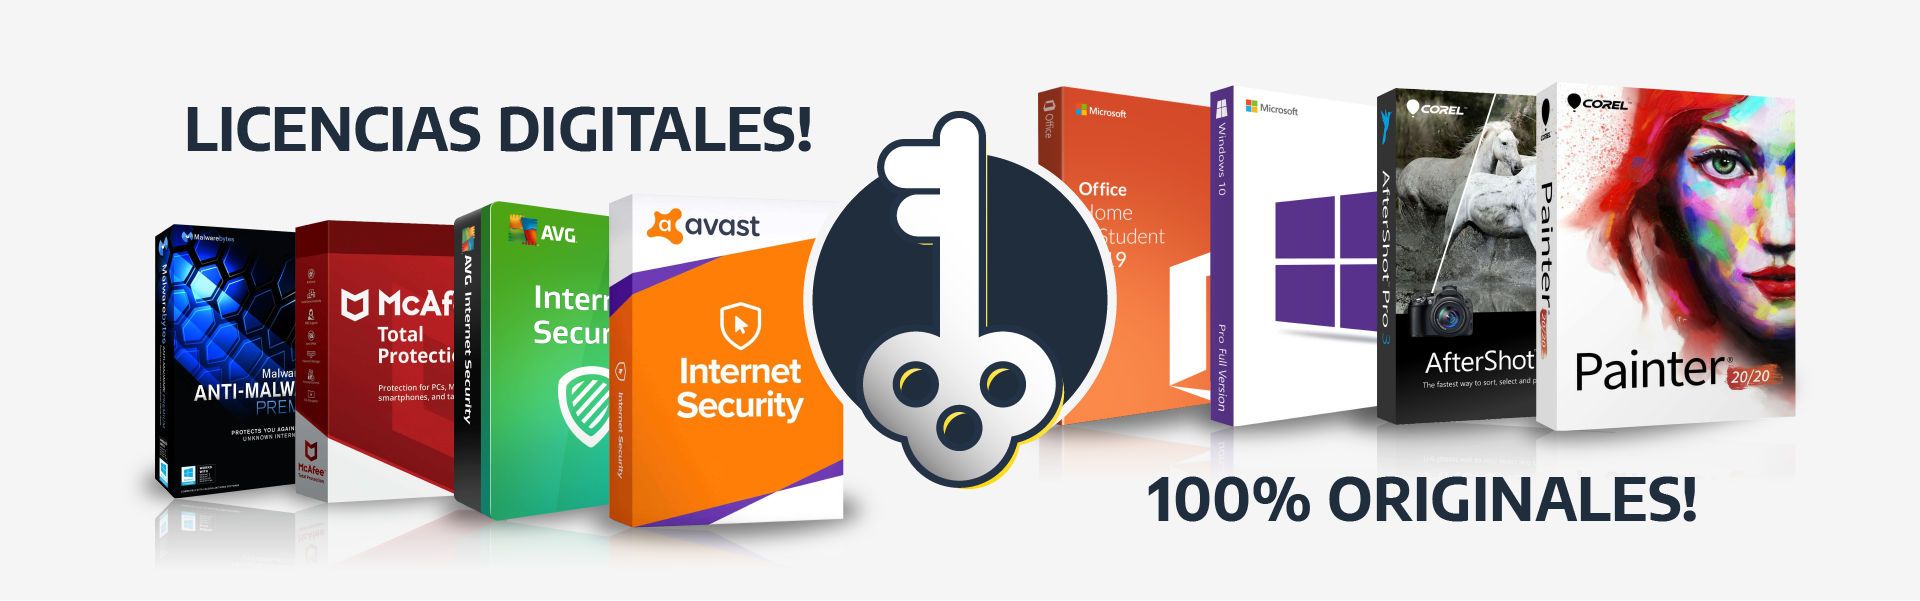 ¡Licencias Digitales! ¡100% Originales!